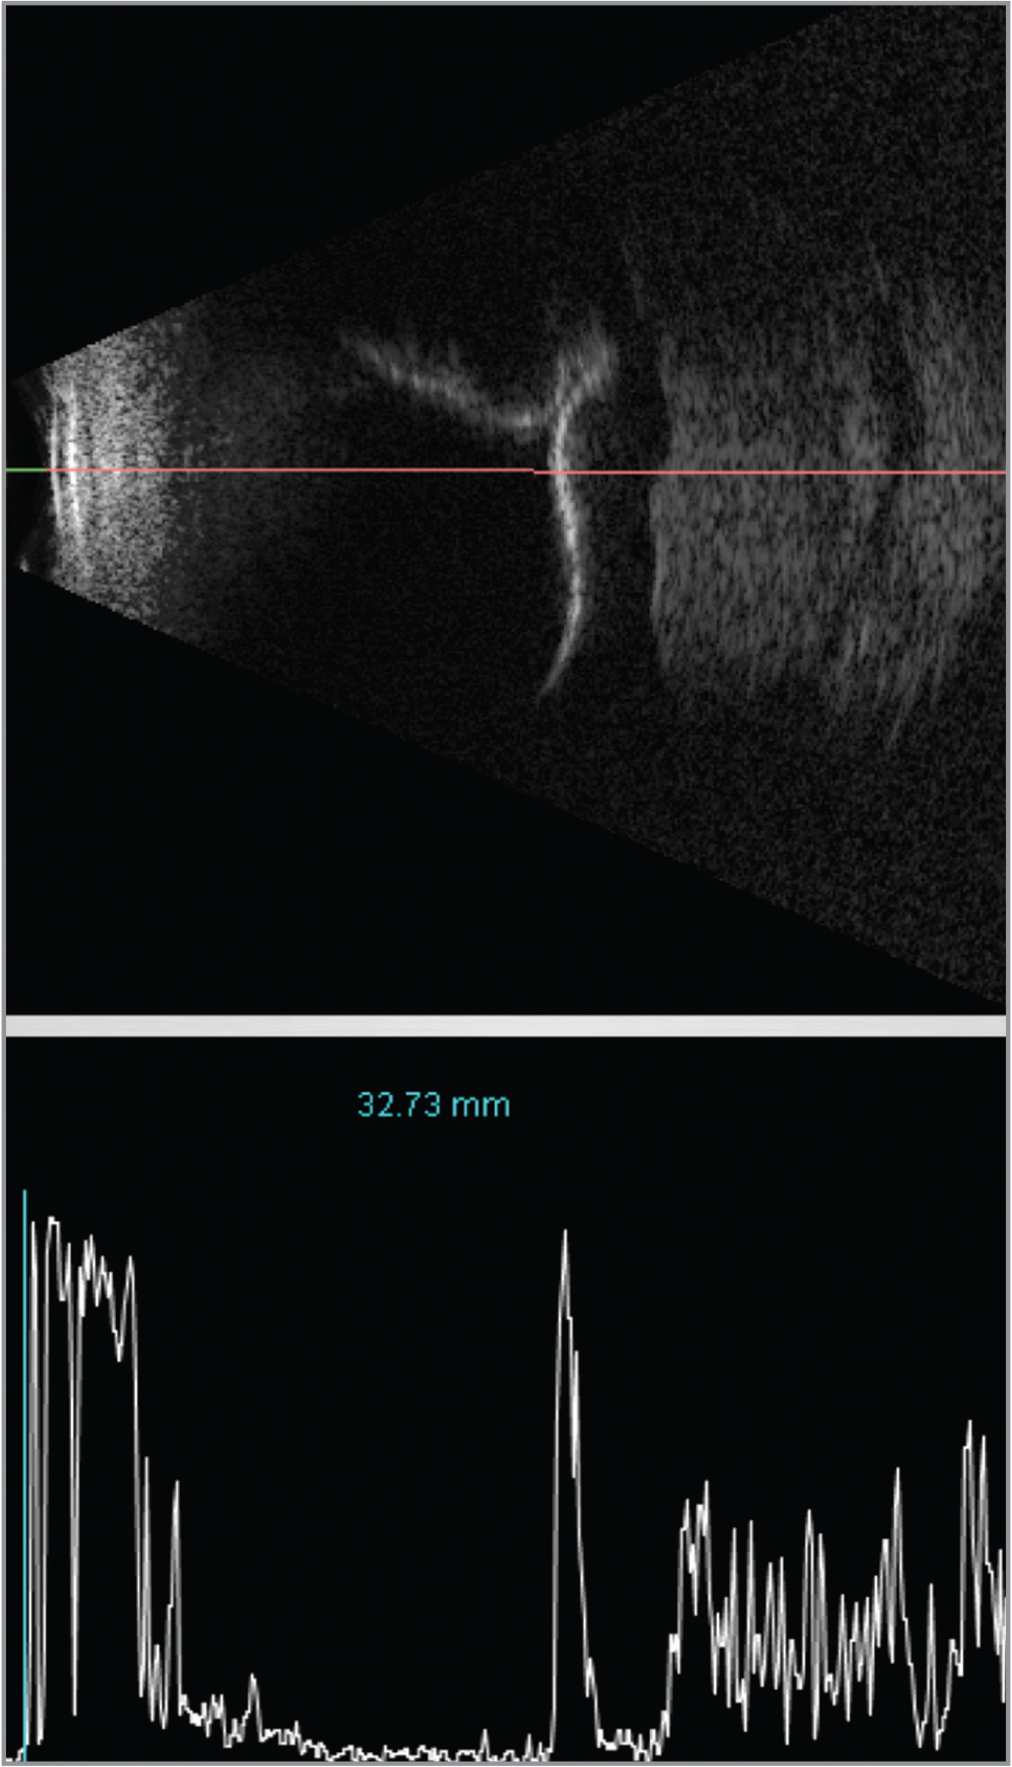 B-scan and A-scan ultrasonography of the right eye demonstrating the highly reflective retina detached over the moderately reflective choroidal tumor.